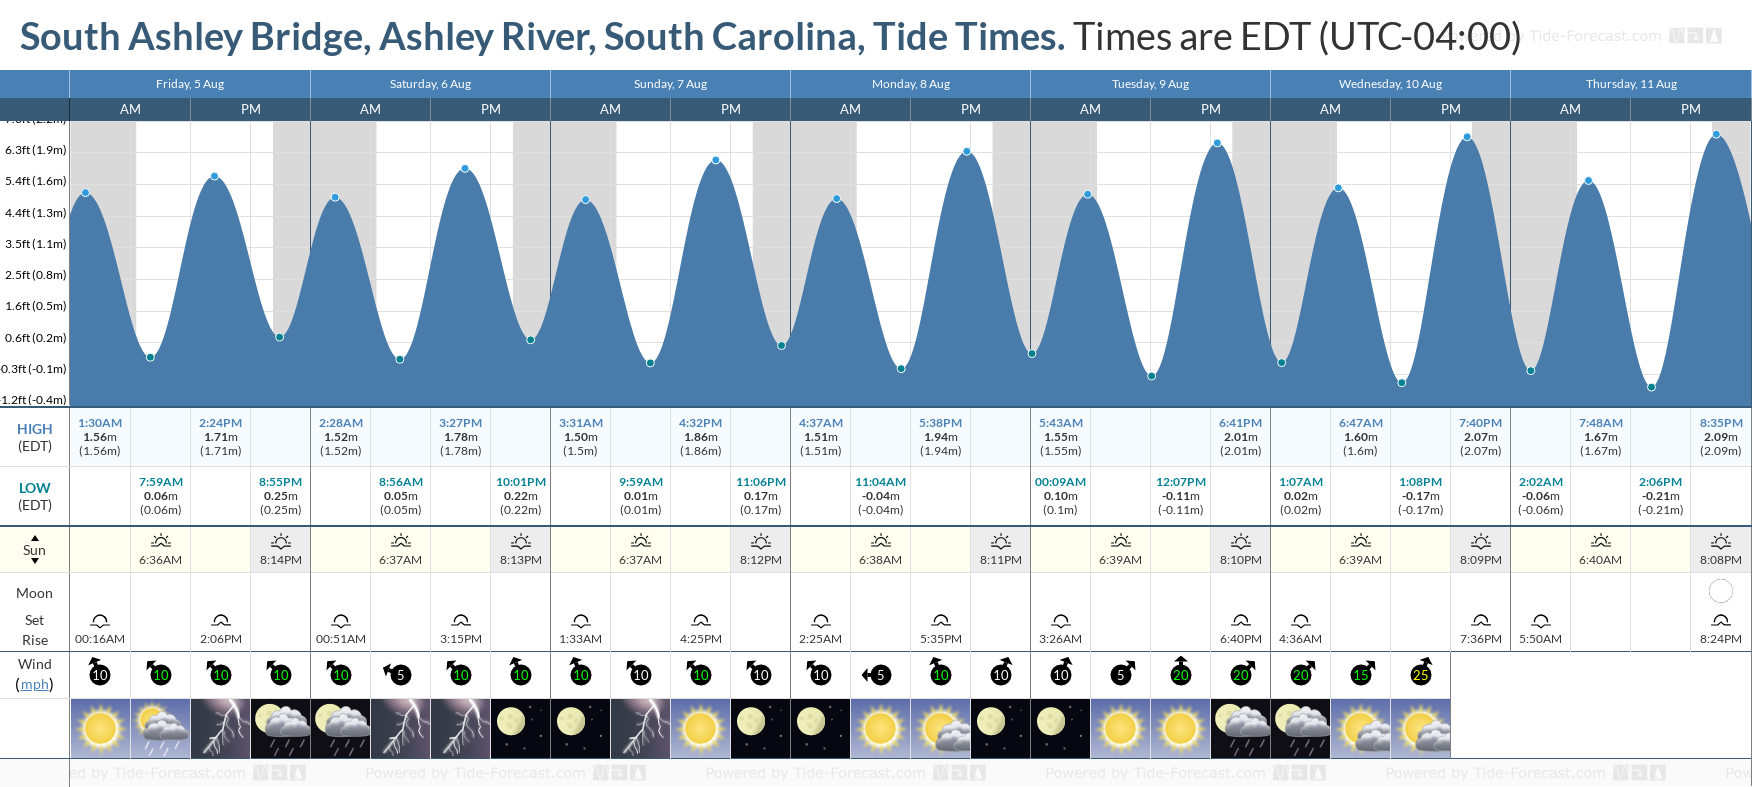 South Ashley Bridge, Ashley River, South Carolina Tide Chart including high and low tide tide times for the next 7 days